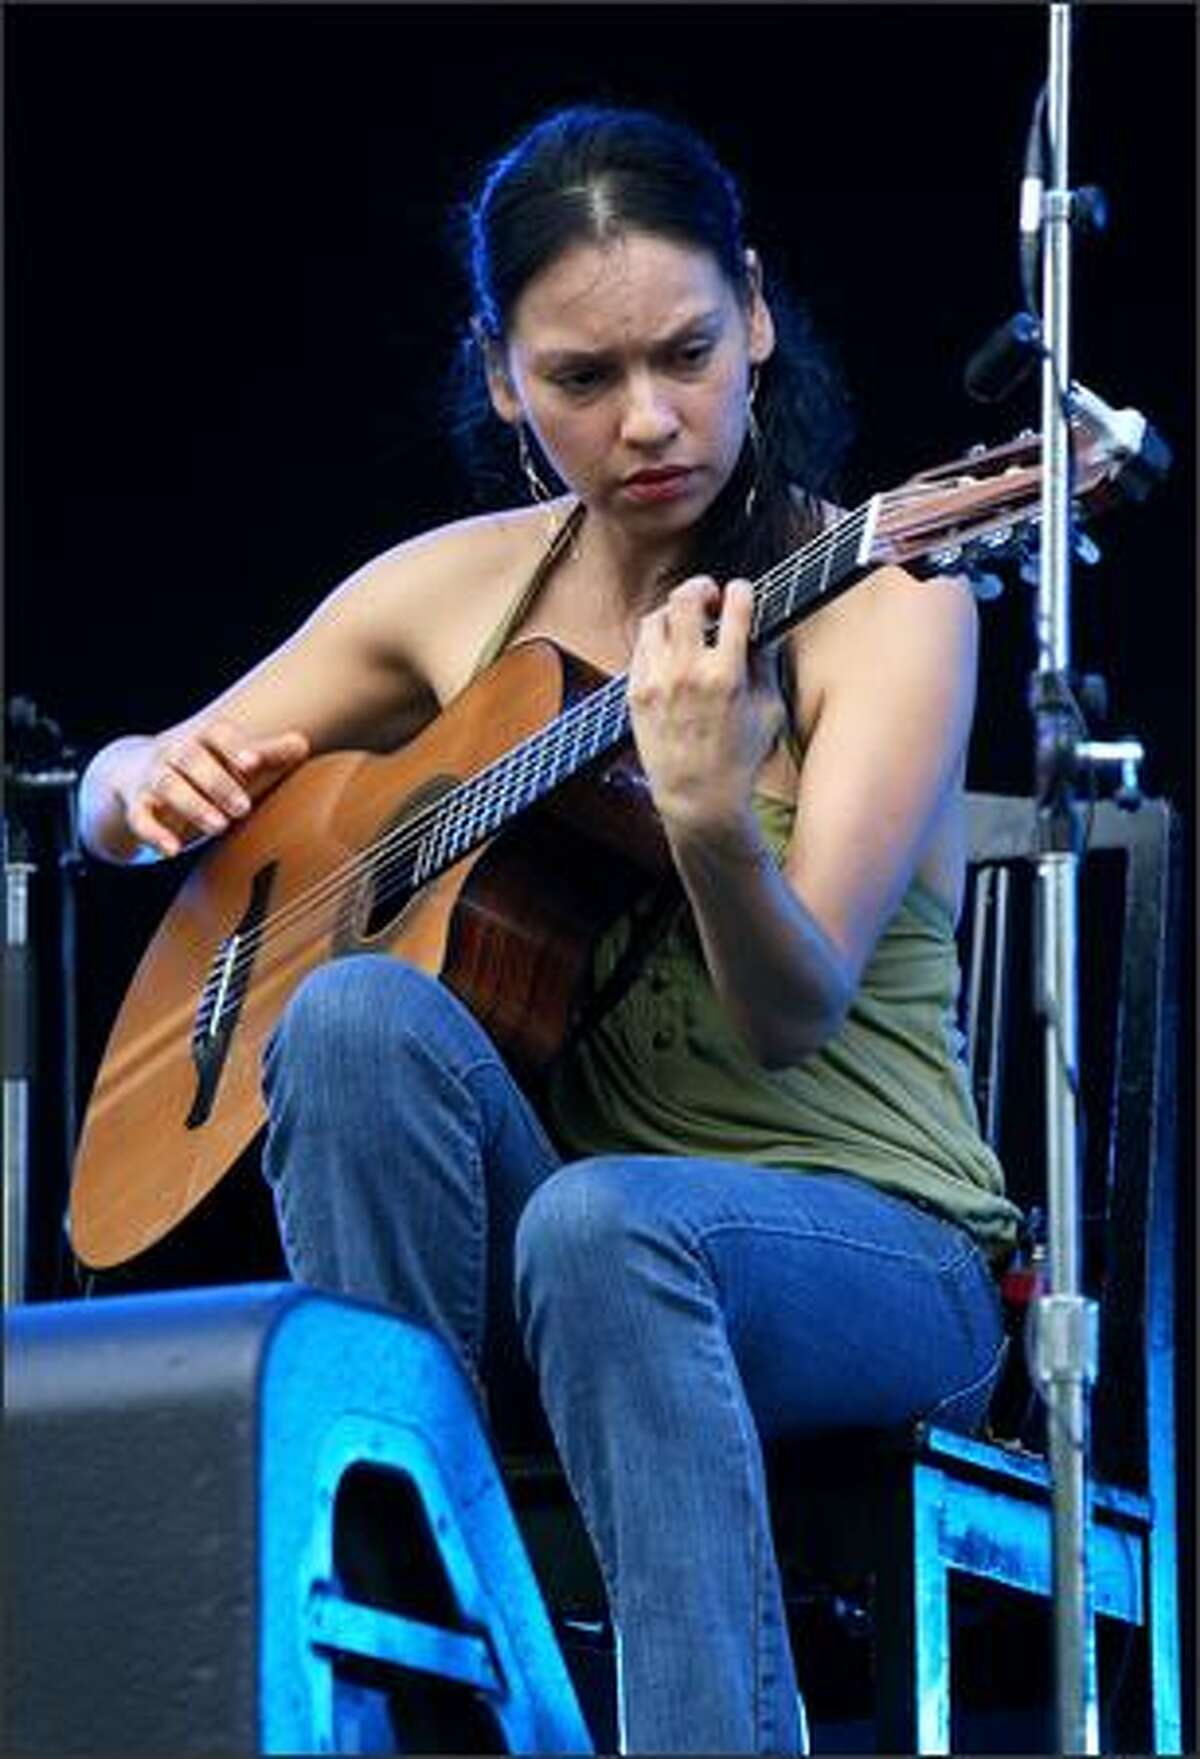 Gabriela Quintero of Mexican guitar duo Rodrigo y Gabriela performs the opening act of the Fuji Rock Festival at Naeba Ski Resort in Yuzawa, Niigata, Japan.